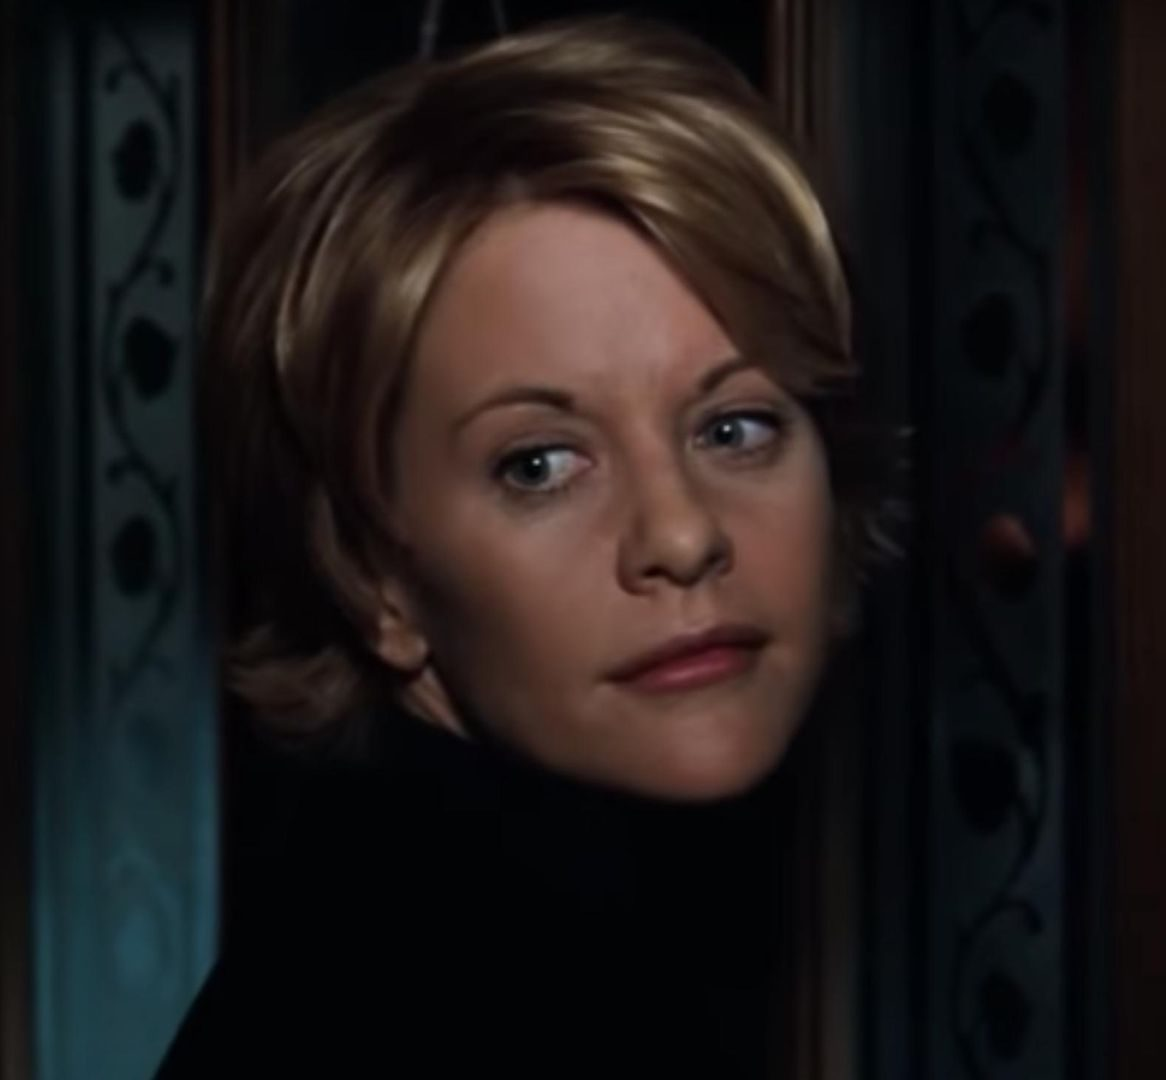 sis 3 e1602170866199 20 Things You Never Knew About Meg Ryan